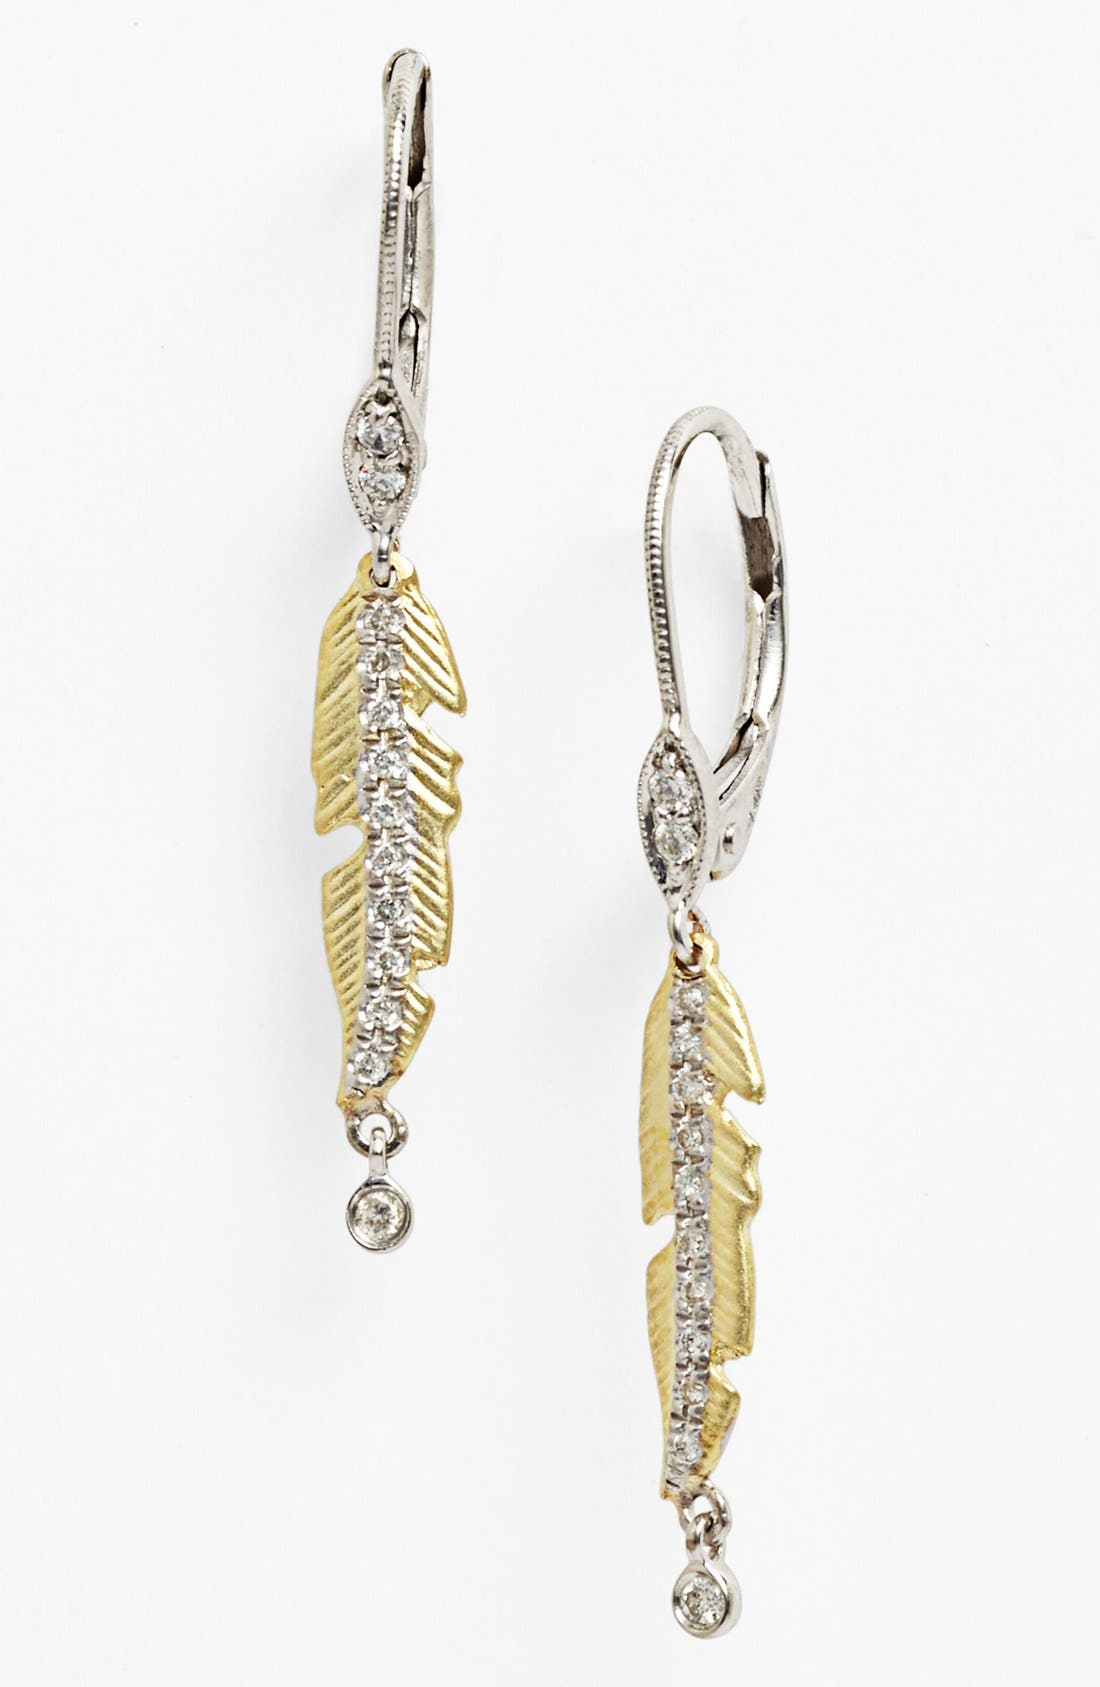 Alternate Image 1 Selected - MeiraT 'Charmed' Diamond Leaf Linear Earrings